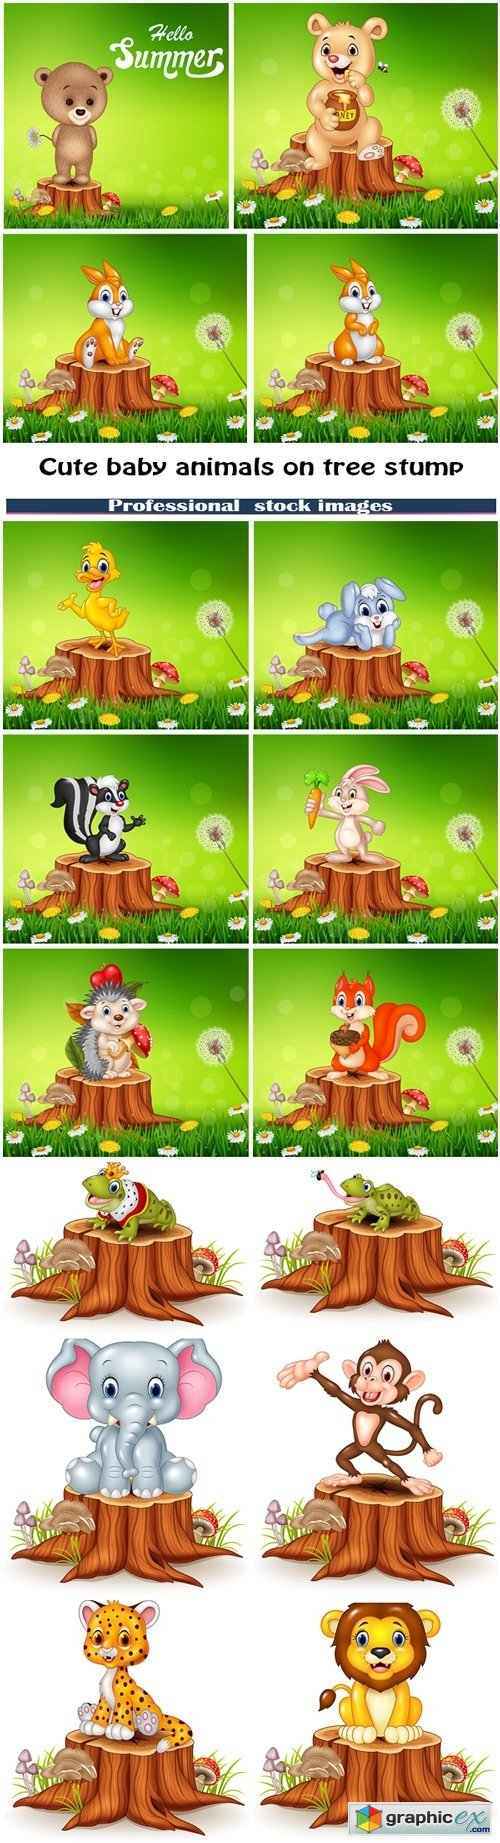 Cute baby animals on tree stump